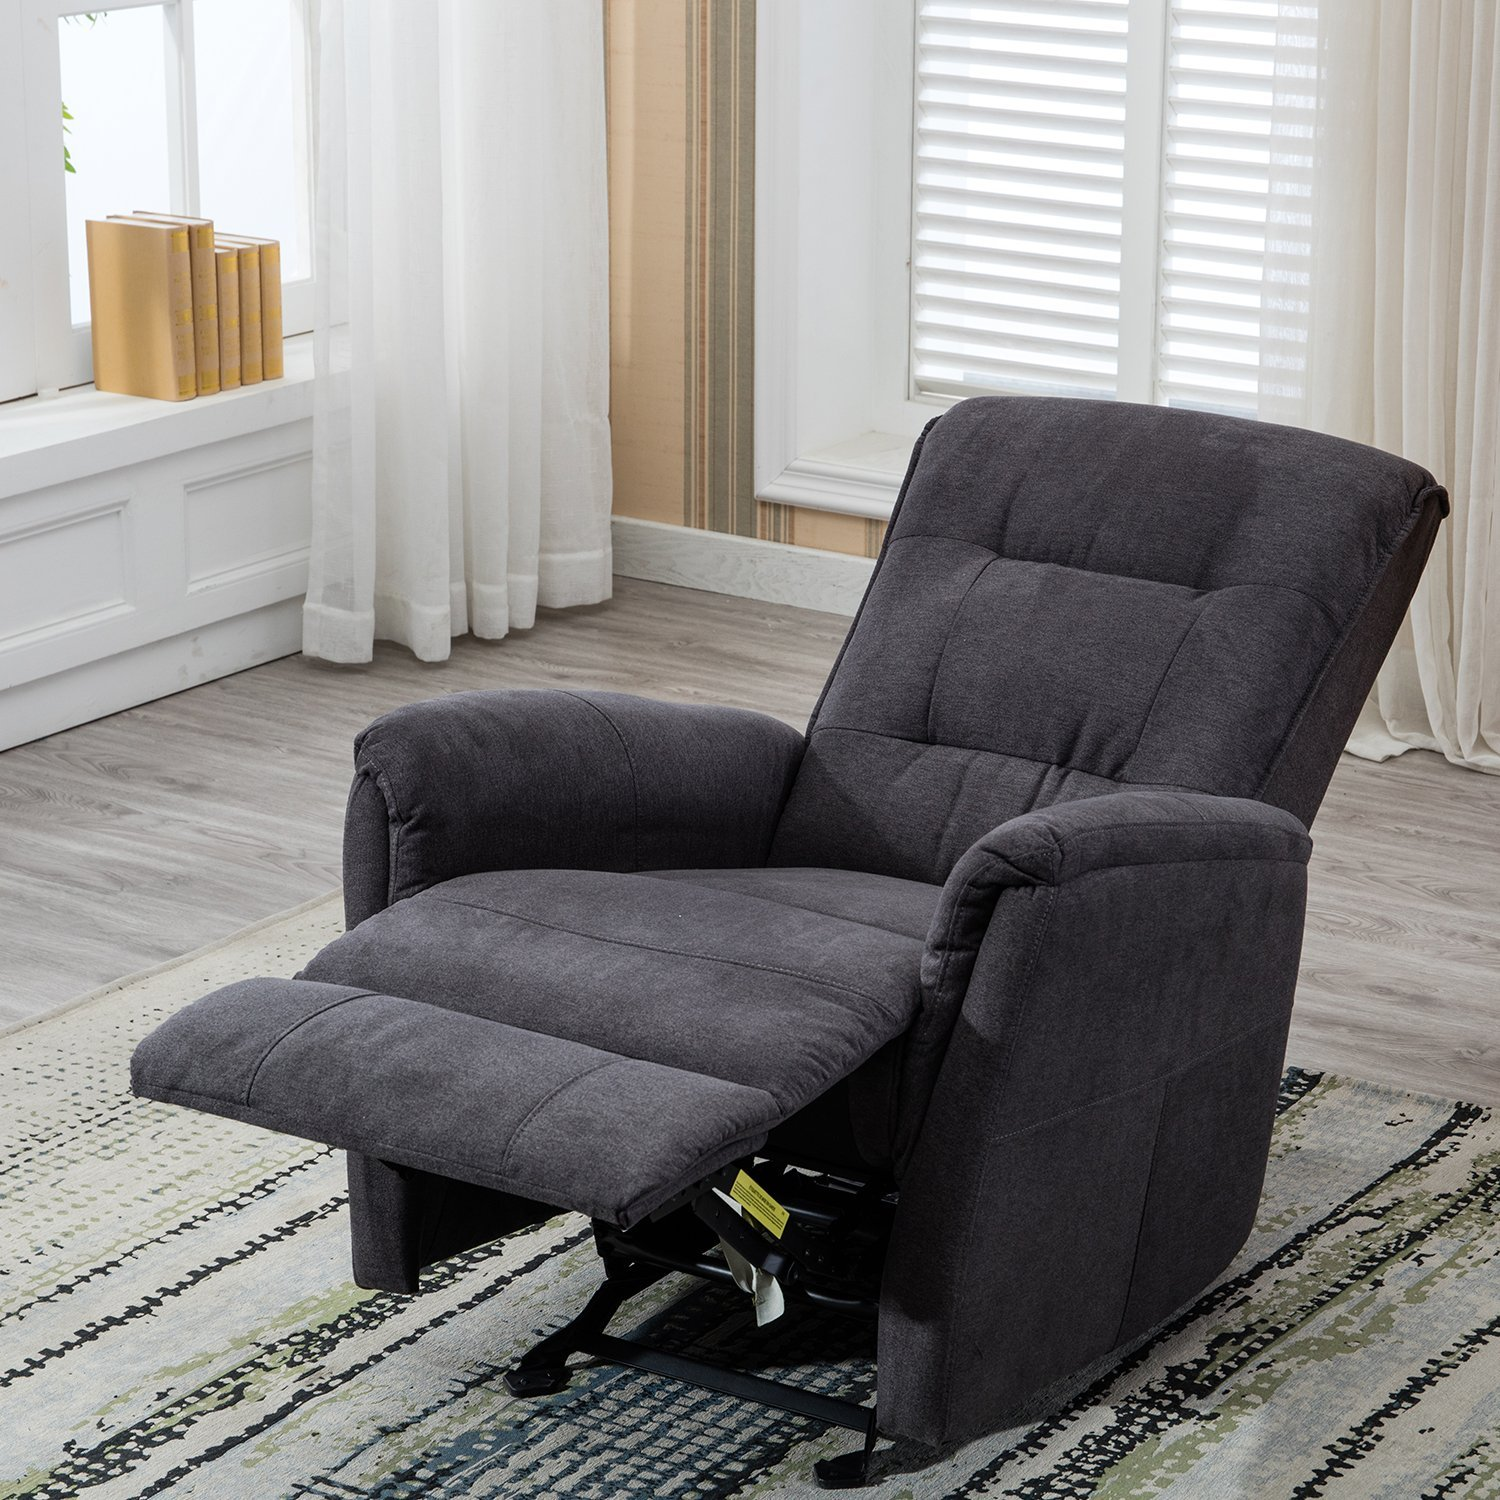 BONZY Glider Recliner Chair with Super Comfy Gliding Track Overstuffed Backrest, Comfy Recliner Sofa - Gray